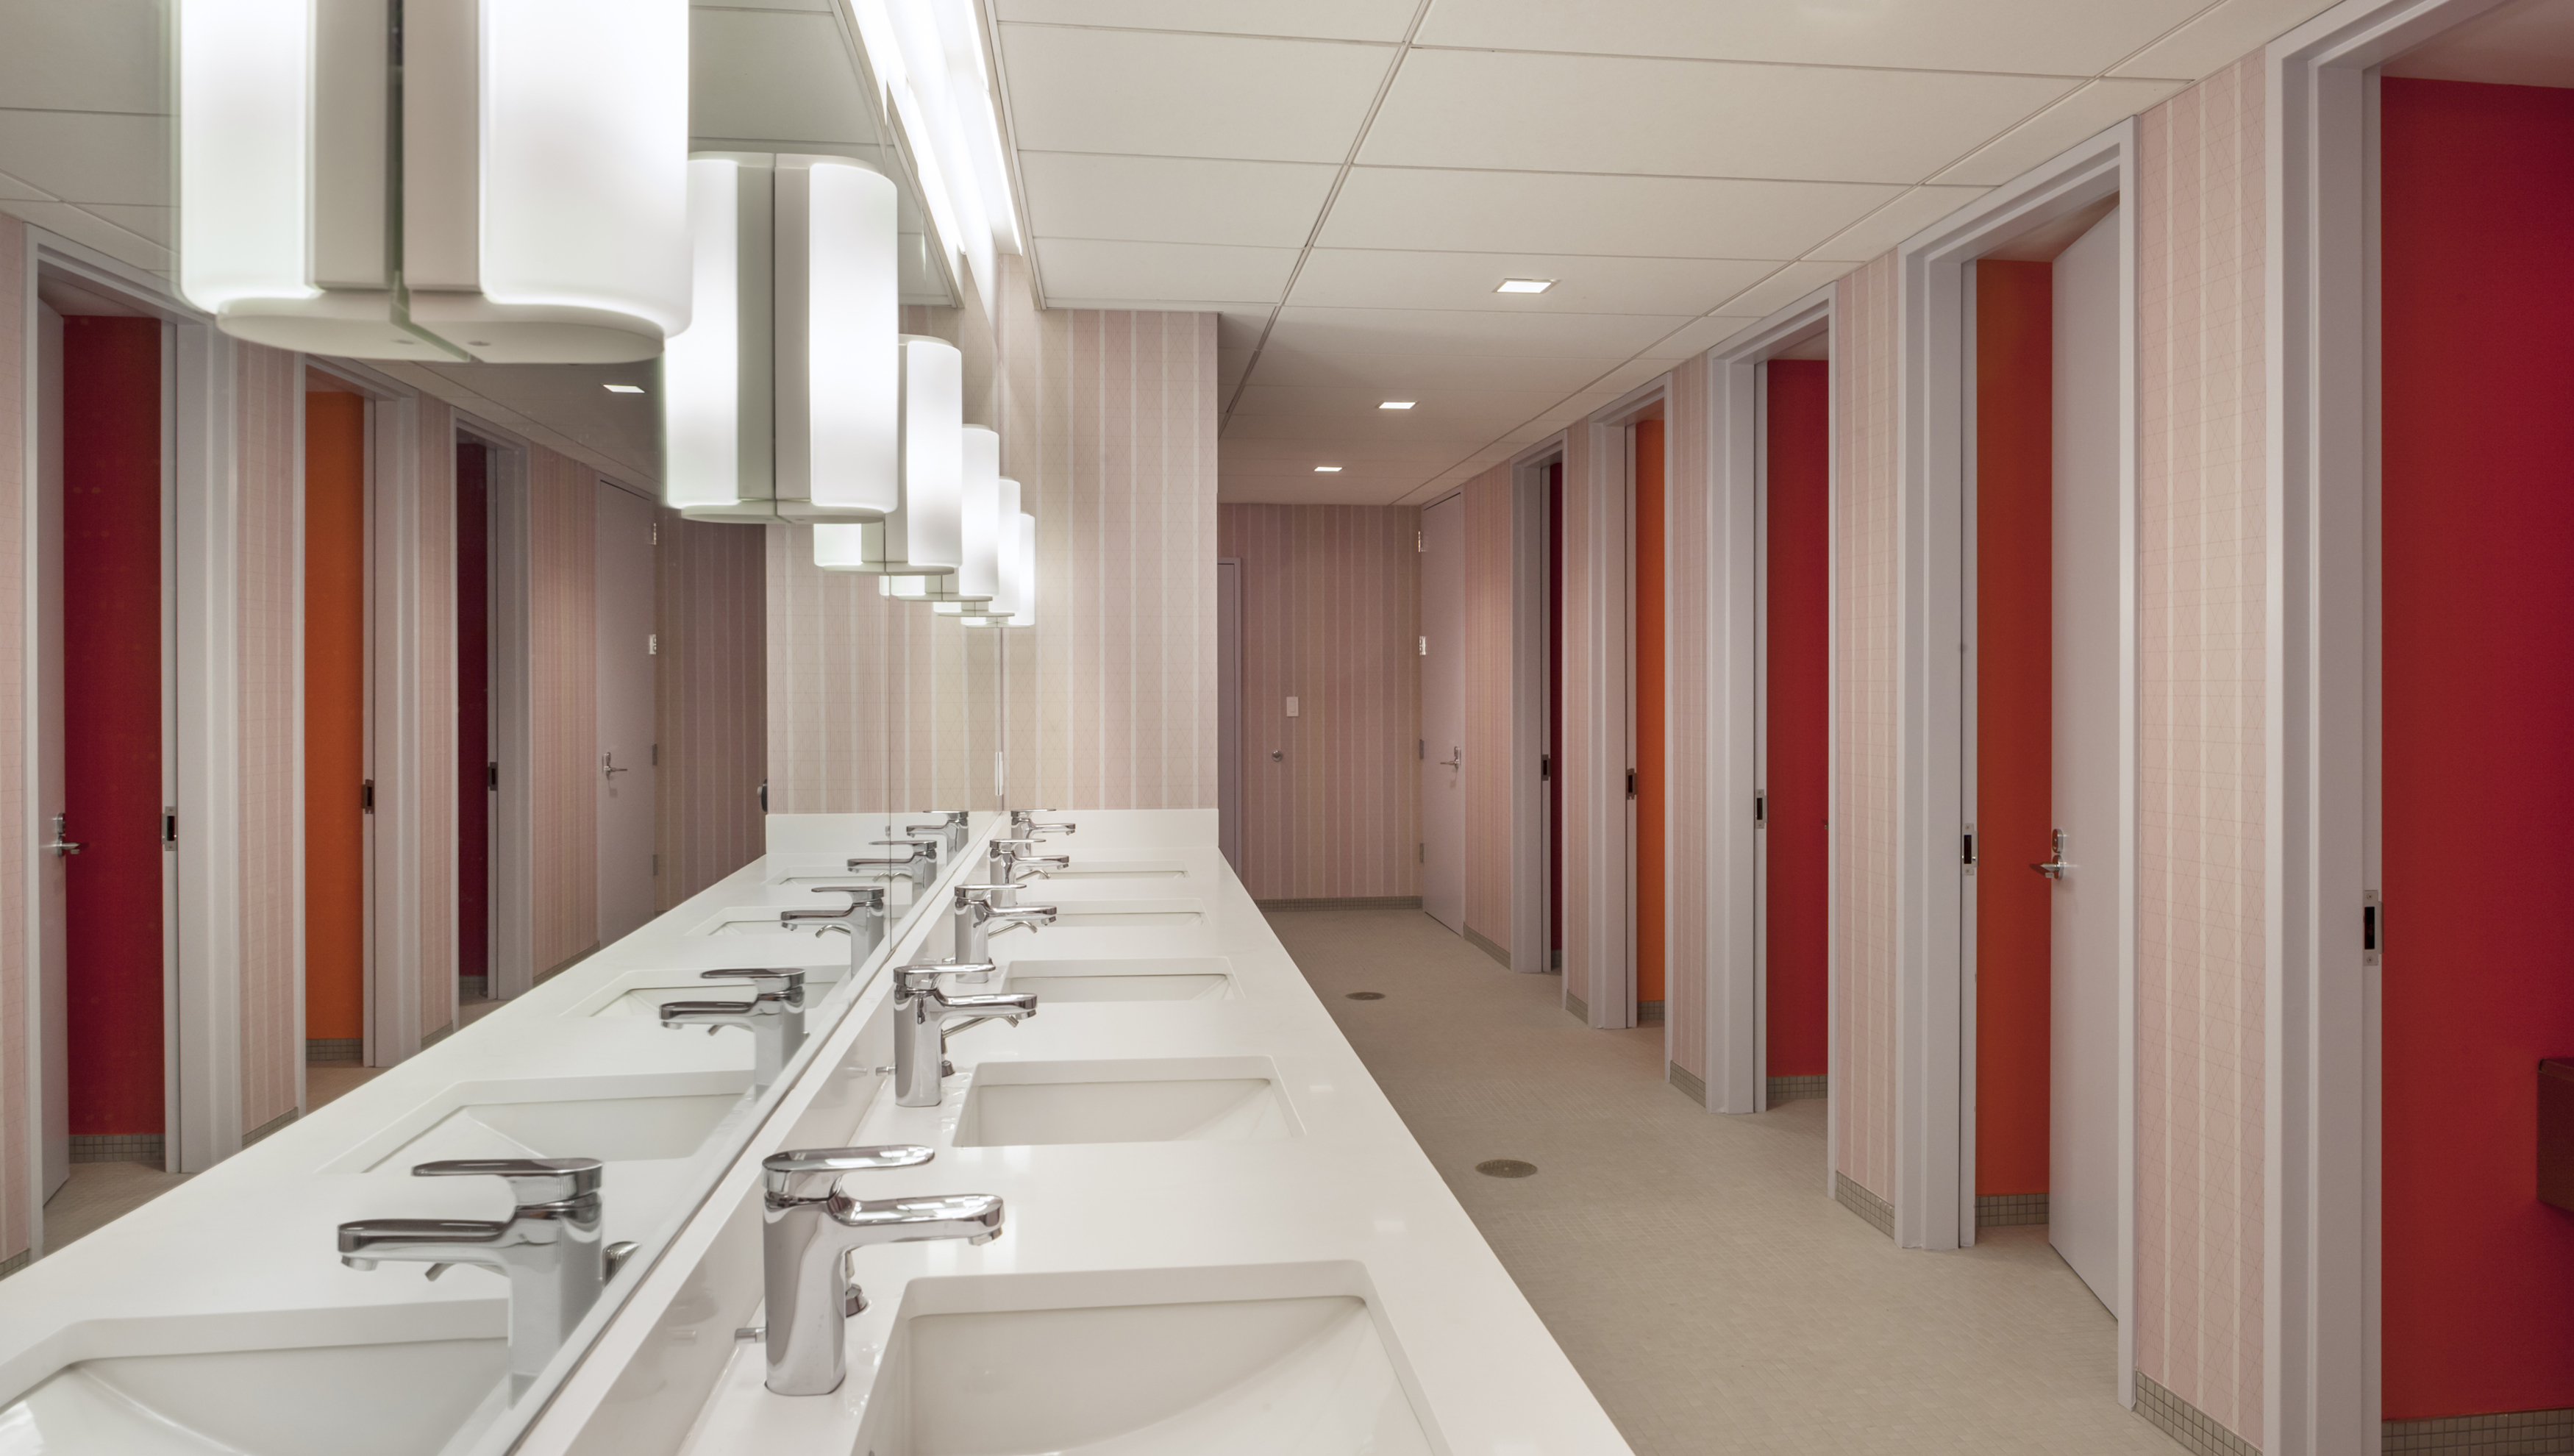 An example of gender-inclusive bathrooms at Congregation Beit Simchat Torah in New York City, designed by the Architecture Research Office.